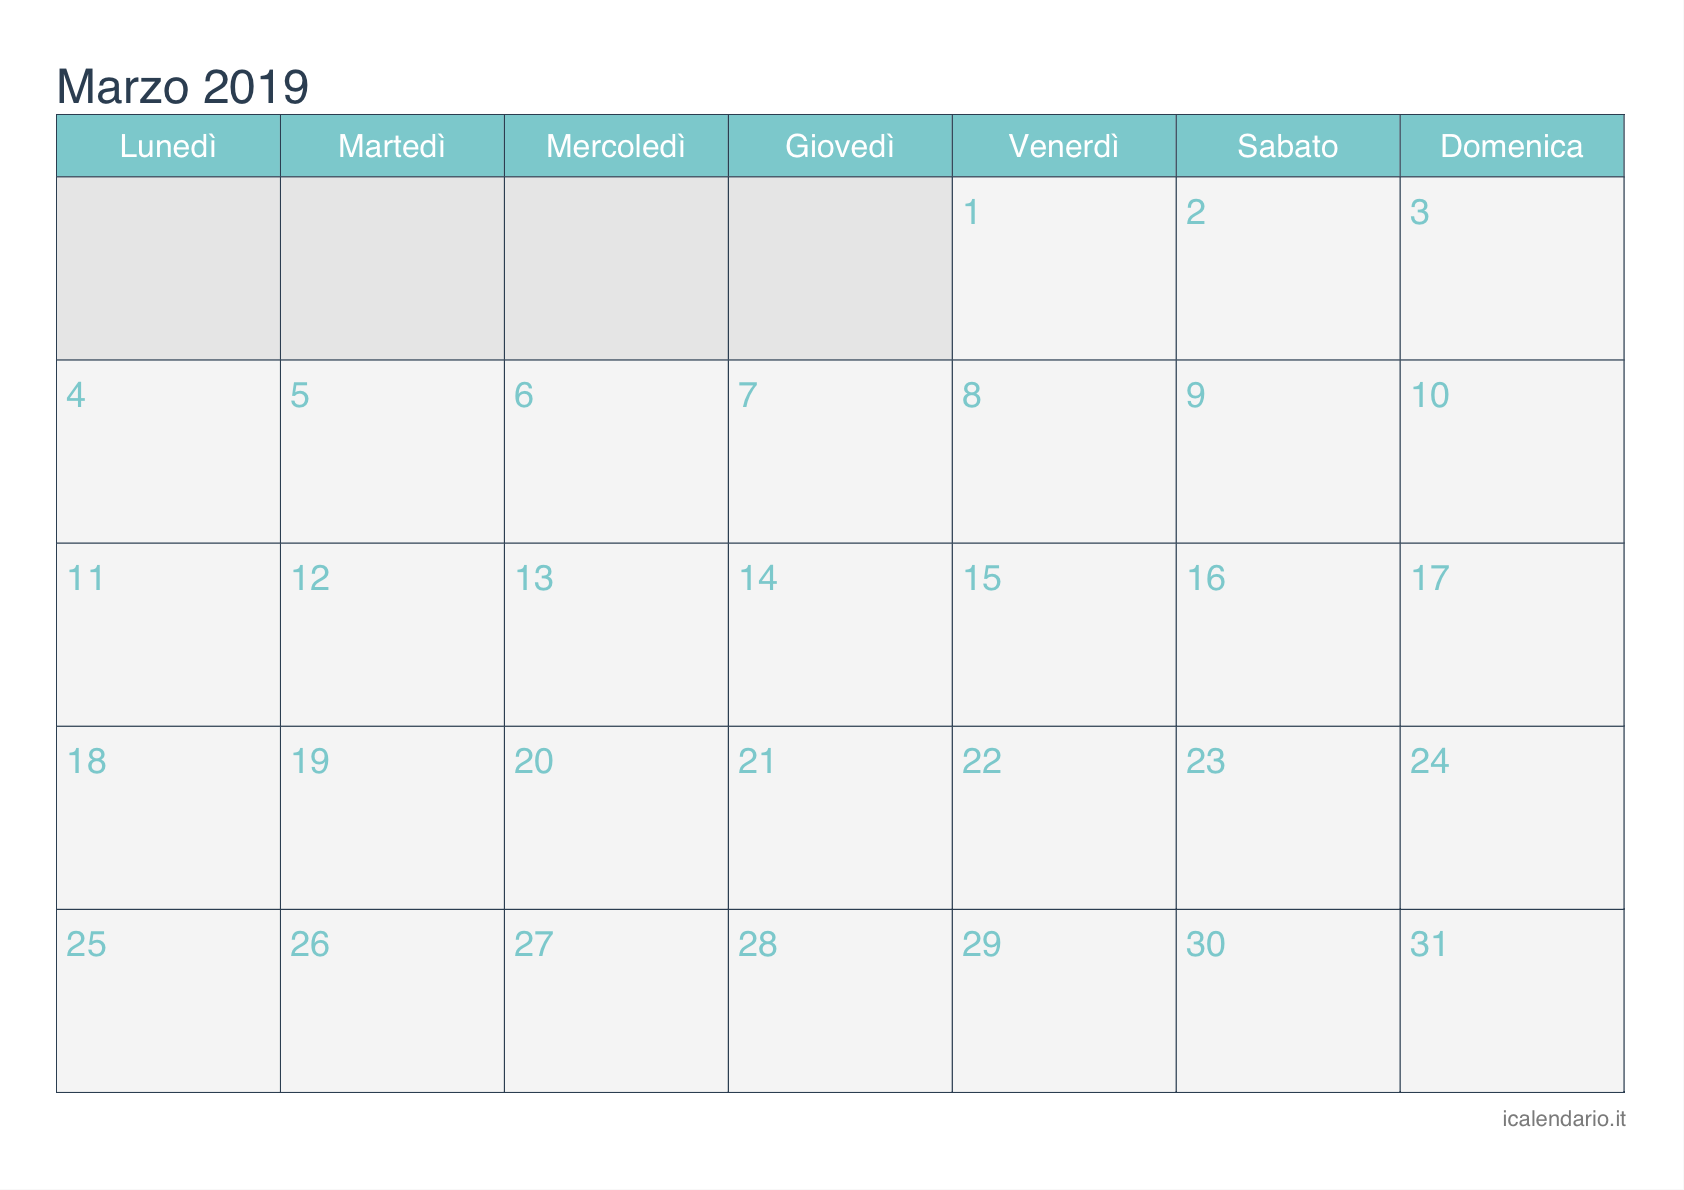 Calendario Di Marzo.Calendario Marzo 2019 Da Stampare Icalendario It